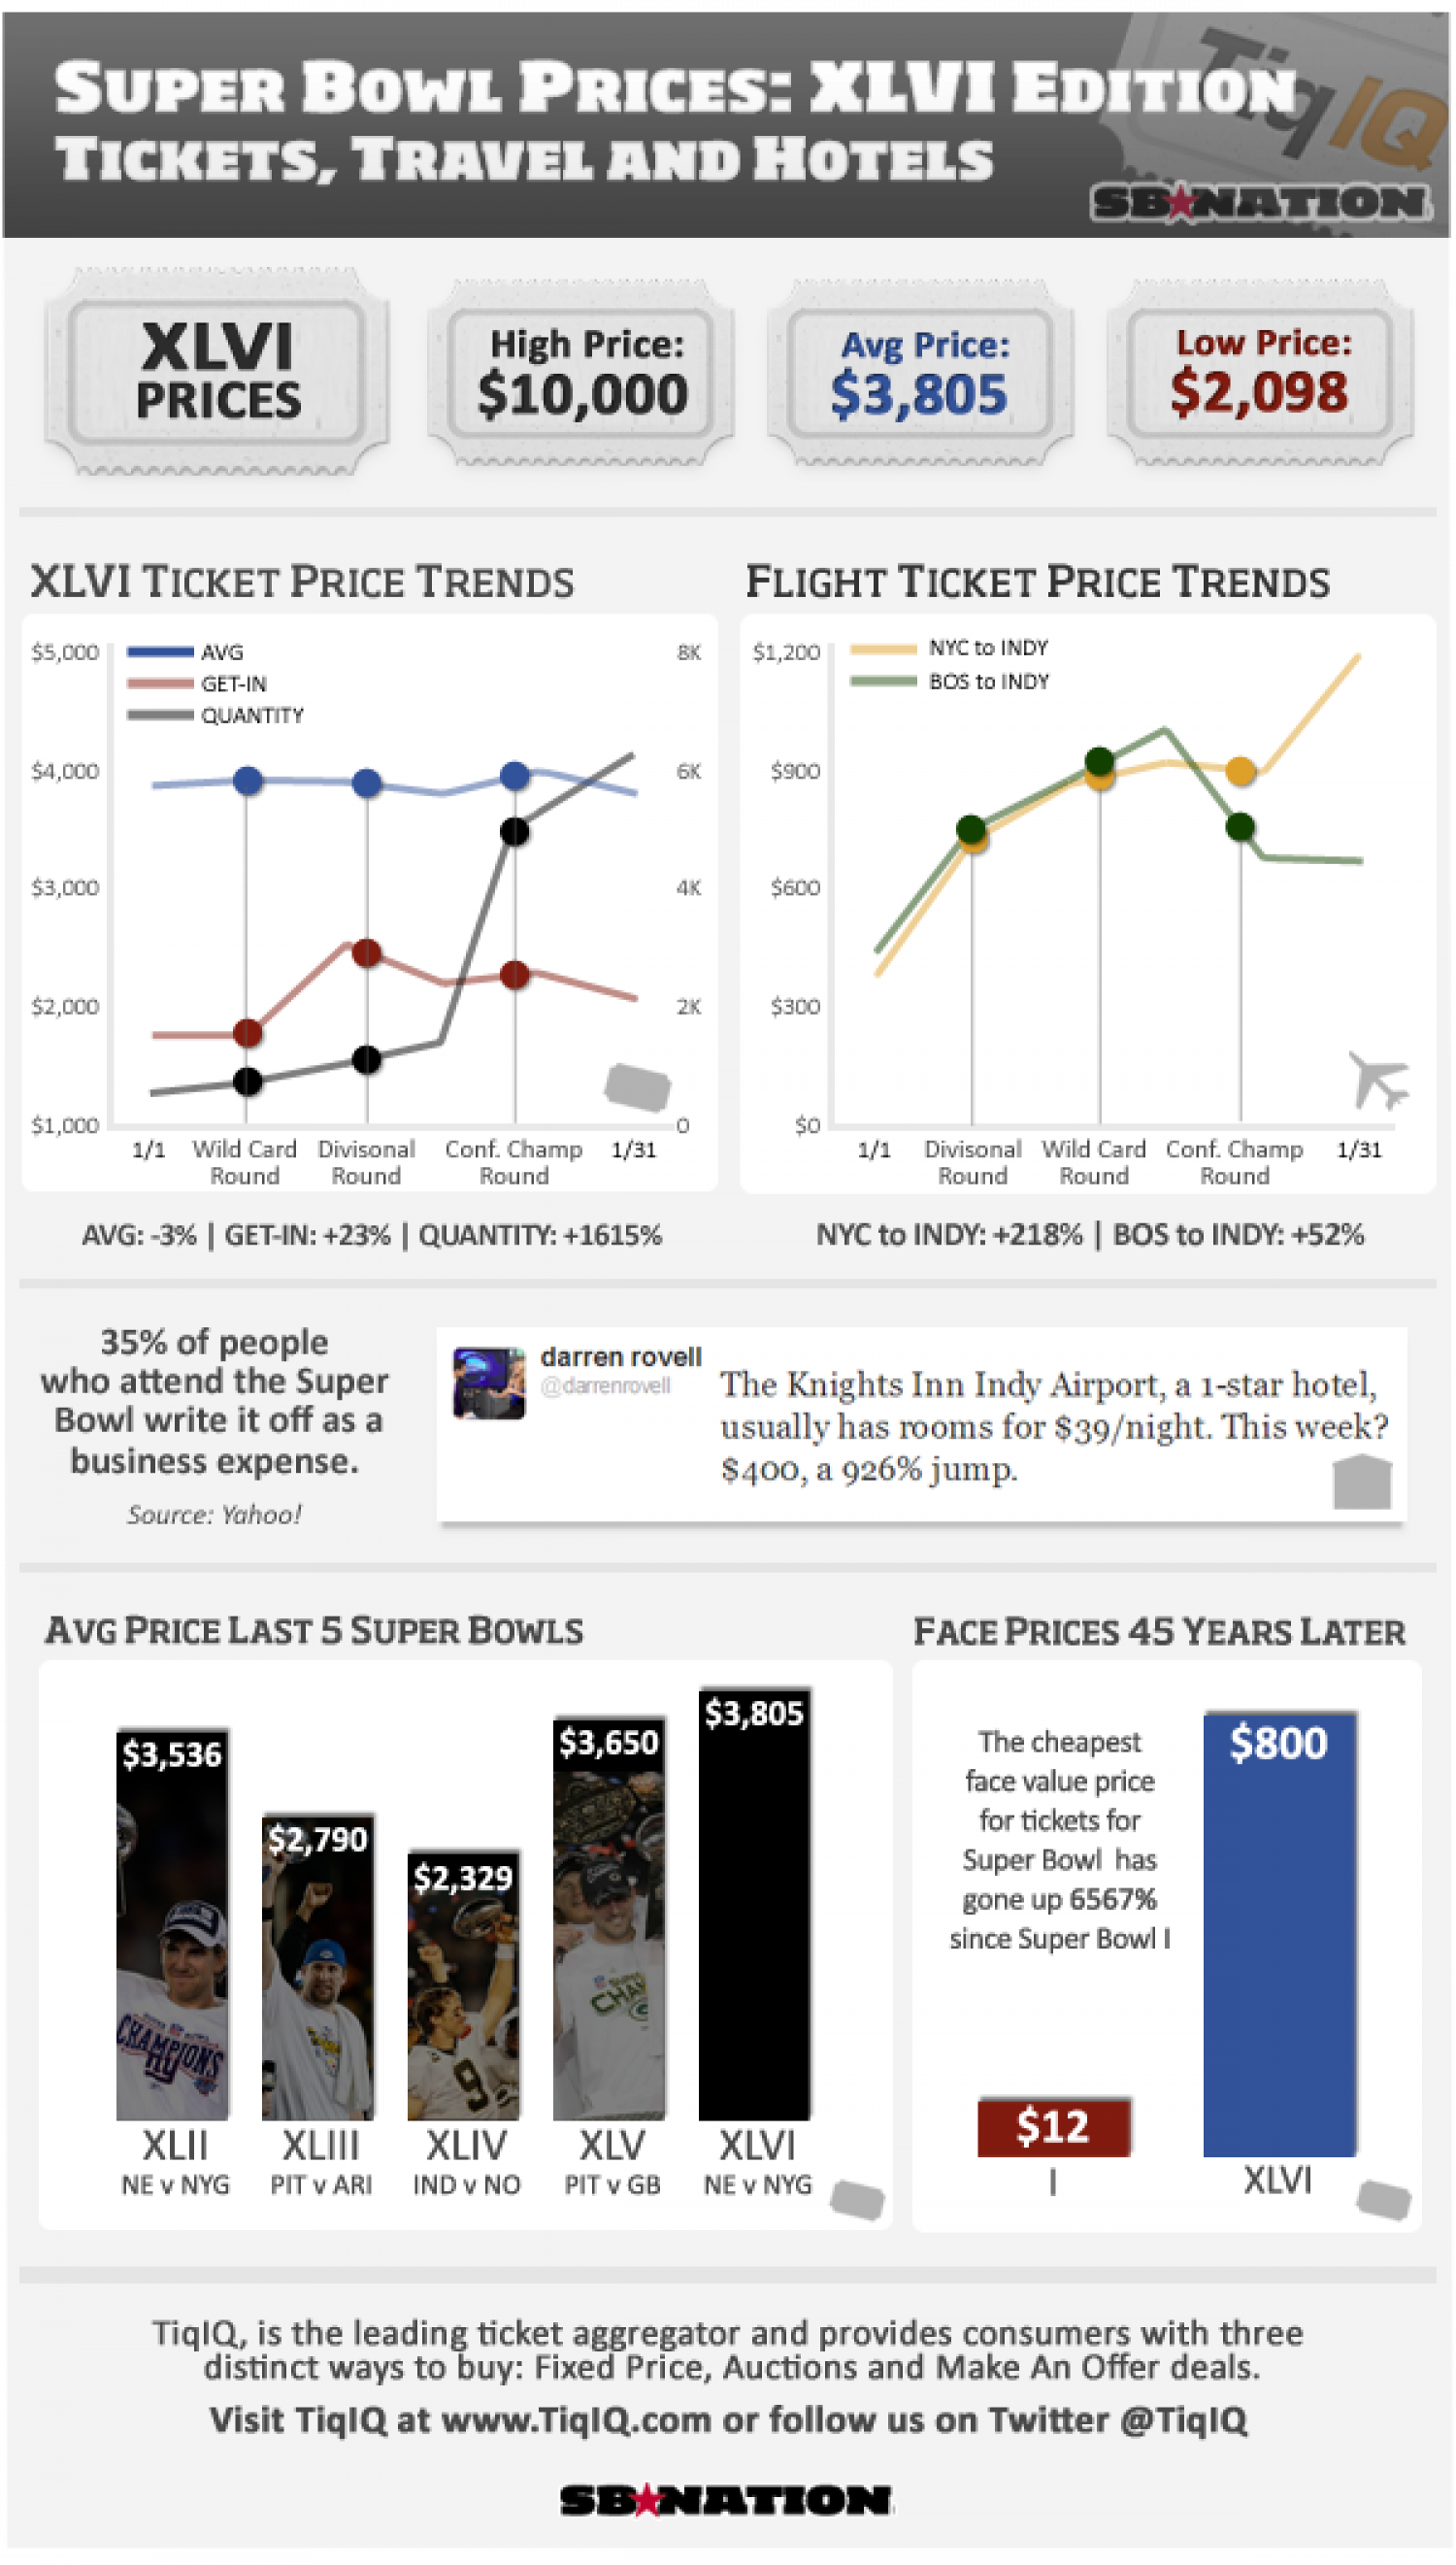 Super Bowl XLVI Prices Tickets Travel  Hotel Infographic